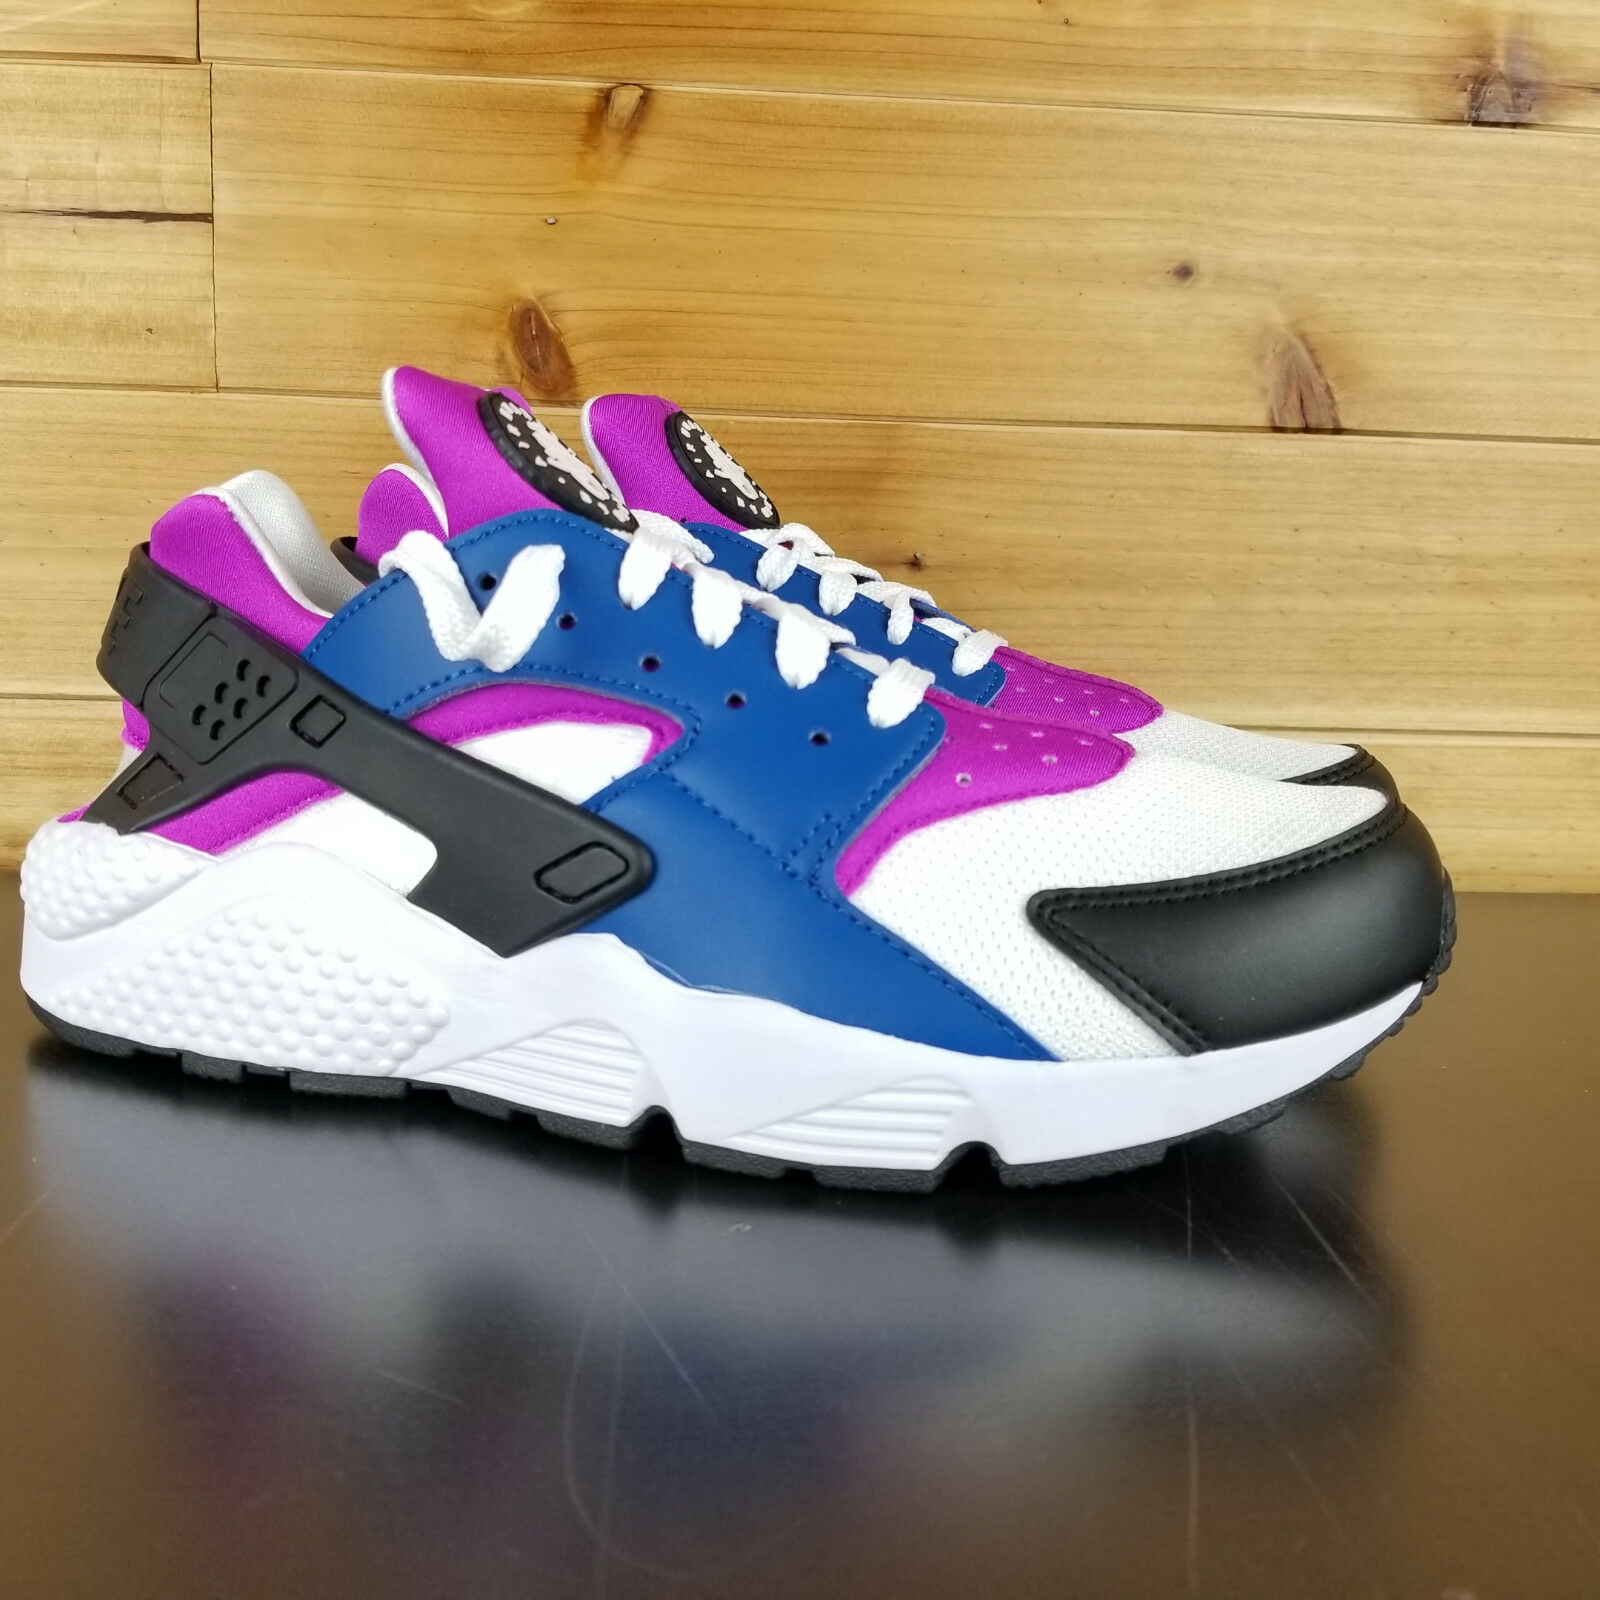 Nike Air Huarache Men's Running Shoes Blue/White/Violet 318429-415 Multiple Comfortable Cheap and beautiful fashion